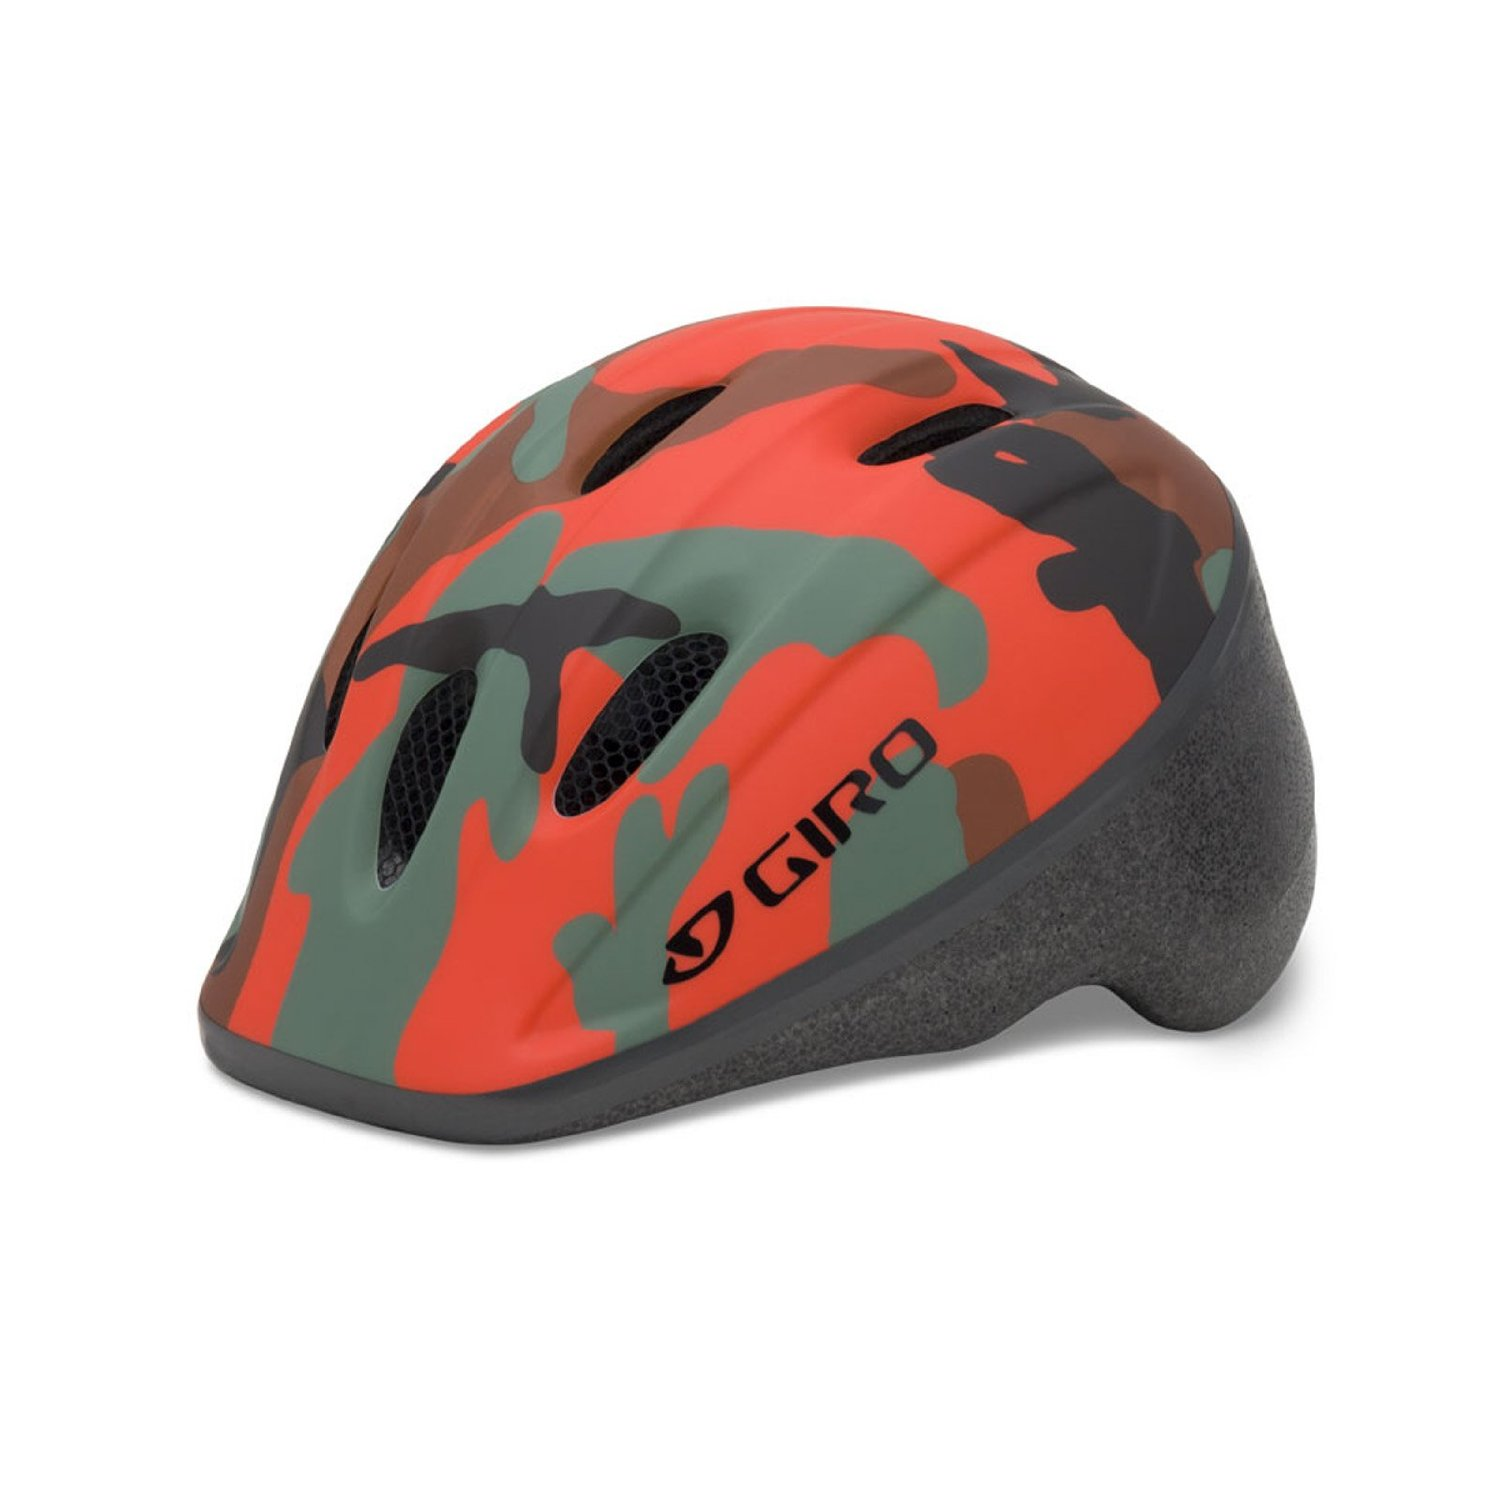 Colors of Giro Bicycle Helmets